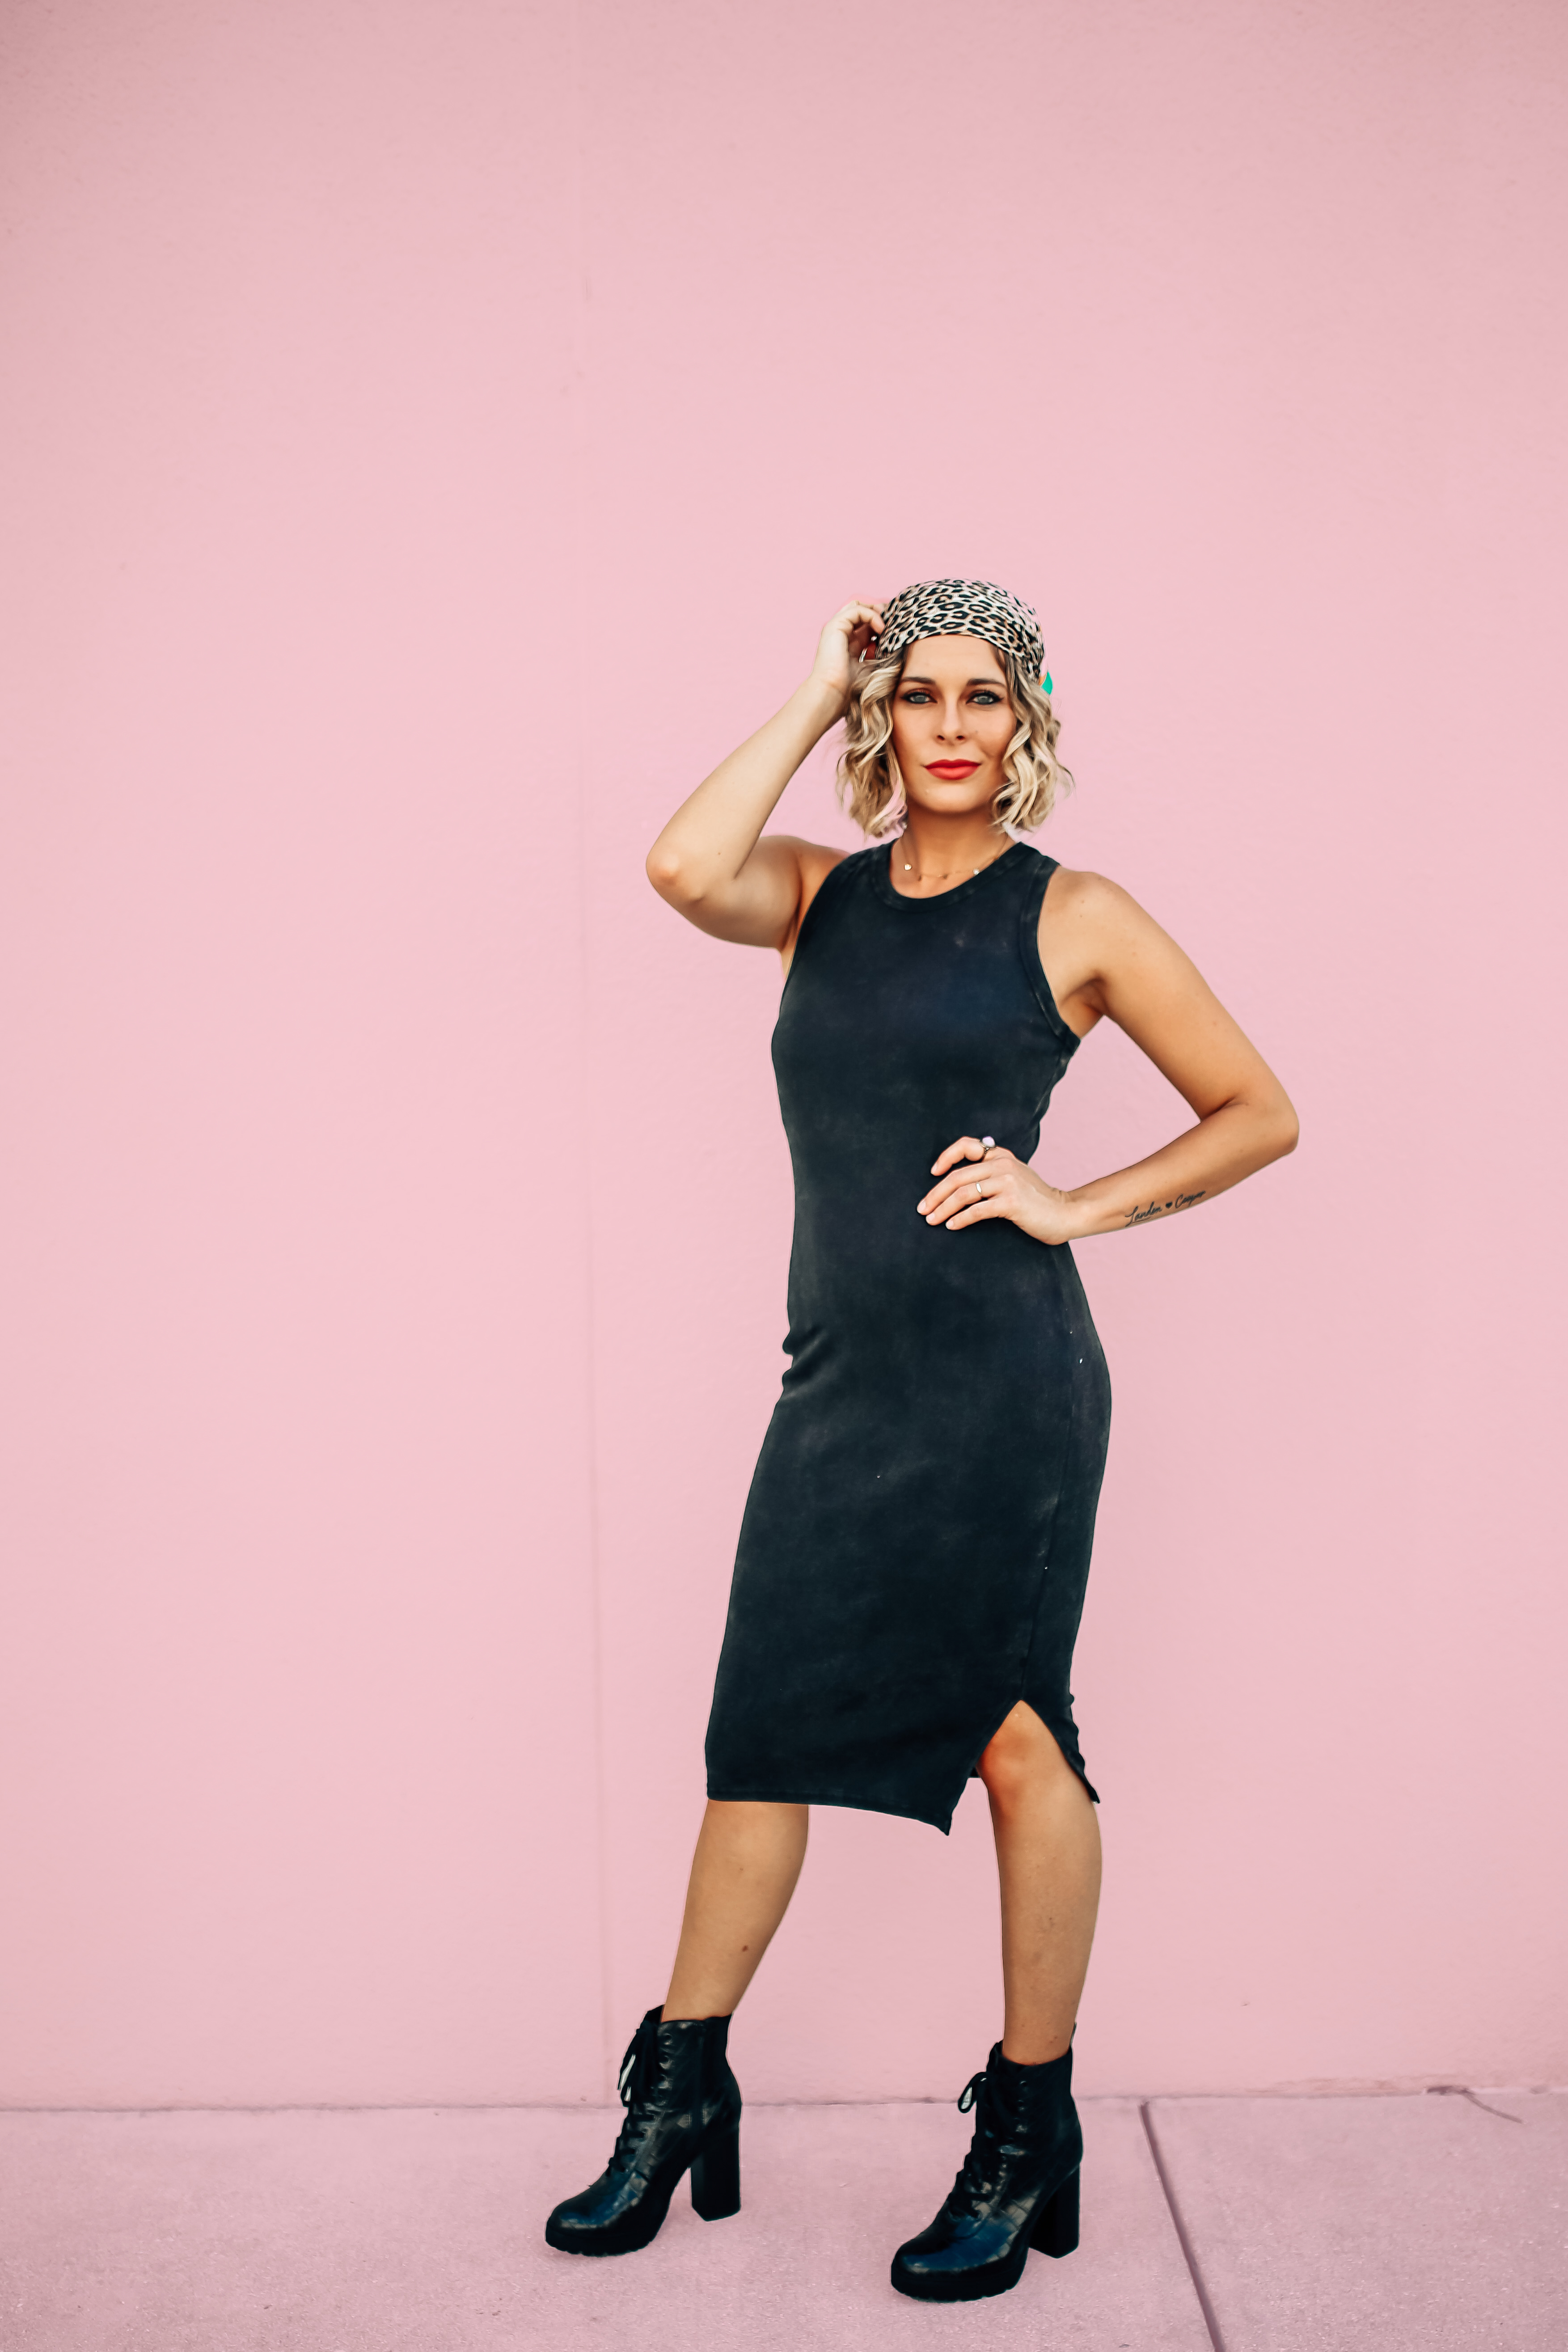 """BODYCON STYLE TANK DRESS. BLACK ACID WASH COLOR. SOFT AND STRETCHY. SMALL SLITS ON BOTH SIDES. SUPERIOR QUALITY. 95% COTTON, 5% SPANDEX. AMANDA IS 5'7"""" A SIZE 2, WEARING A SMALL. S 0-4 M 4-8 L 10-14"""